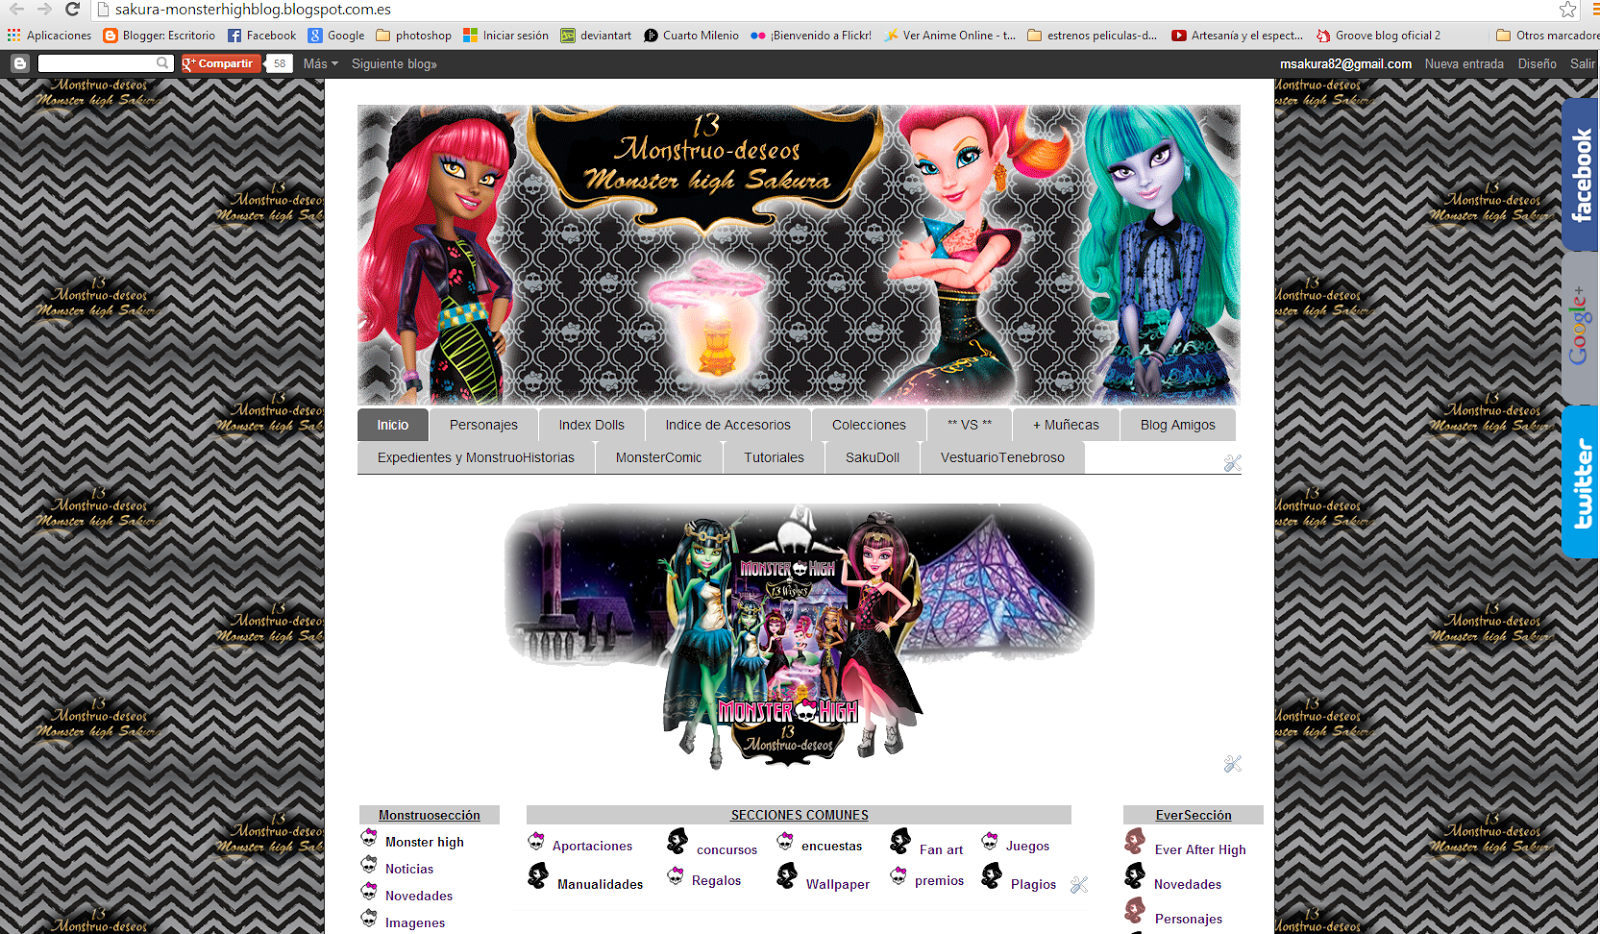 monster high: Diseño 13 deseos